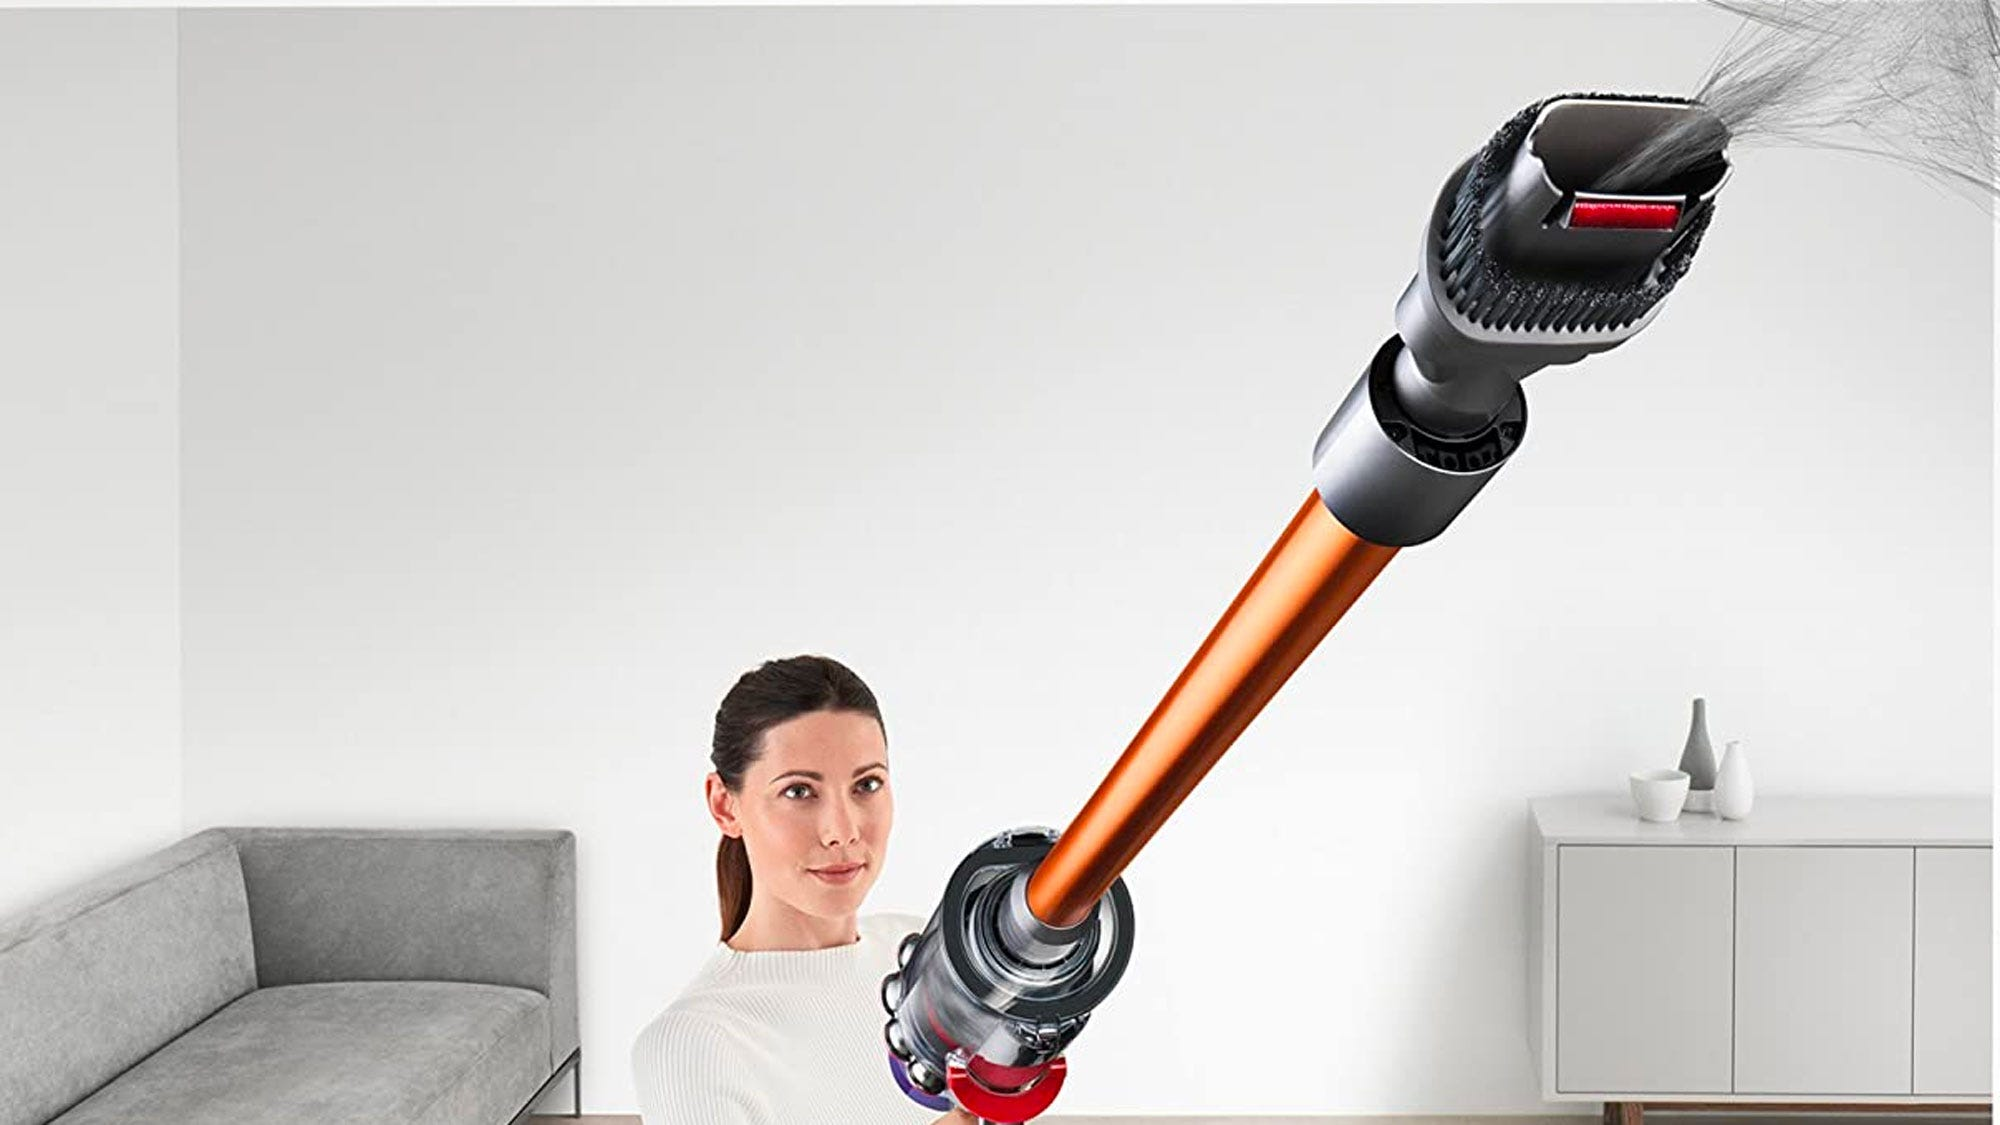 The Dyson V10 Absolute is a great cordless vacuum—and it's on sale ahead of Prime Day 2020